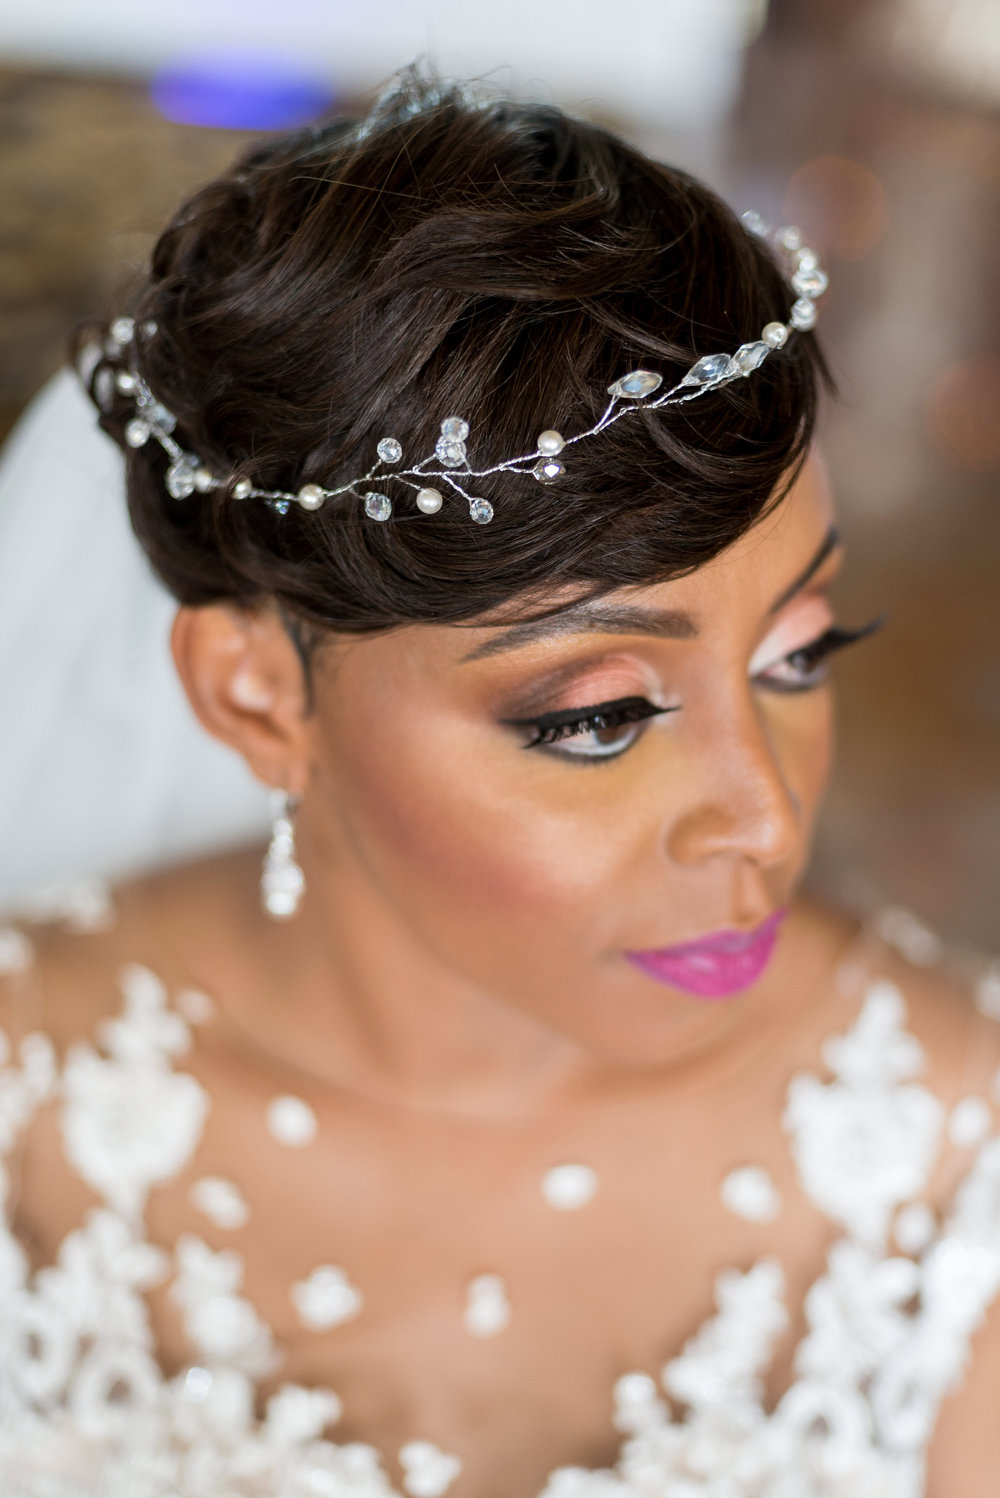 wedding day hair and makeup for black women.jpg